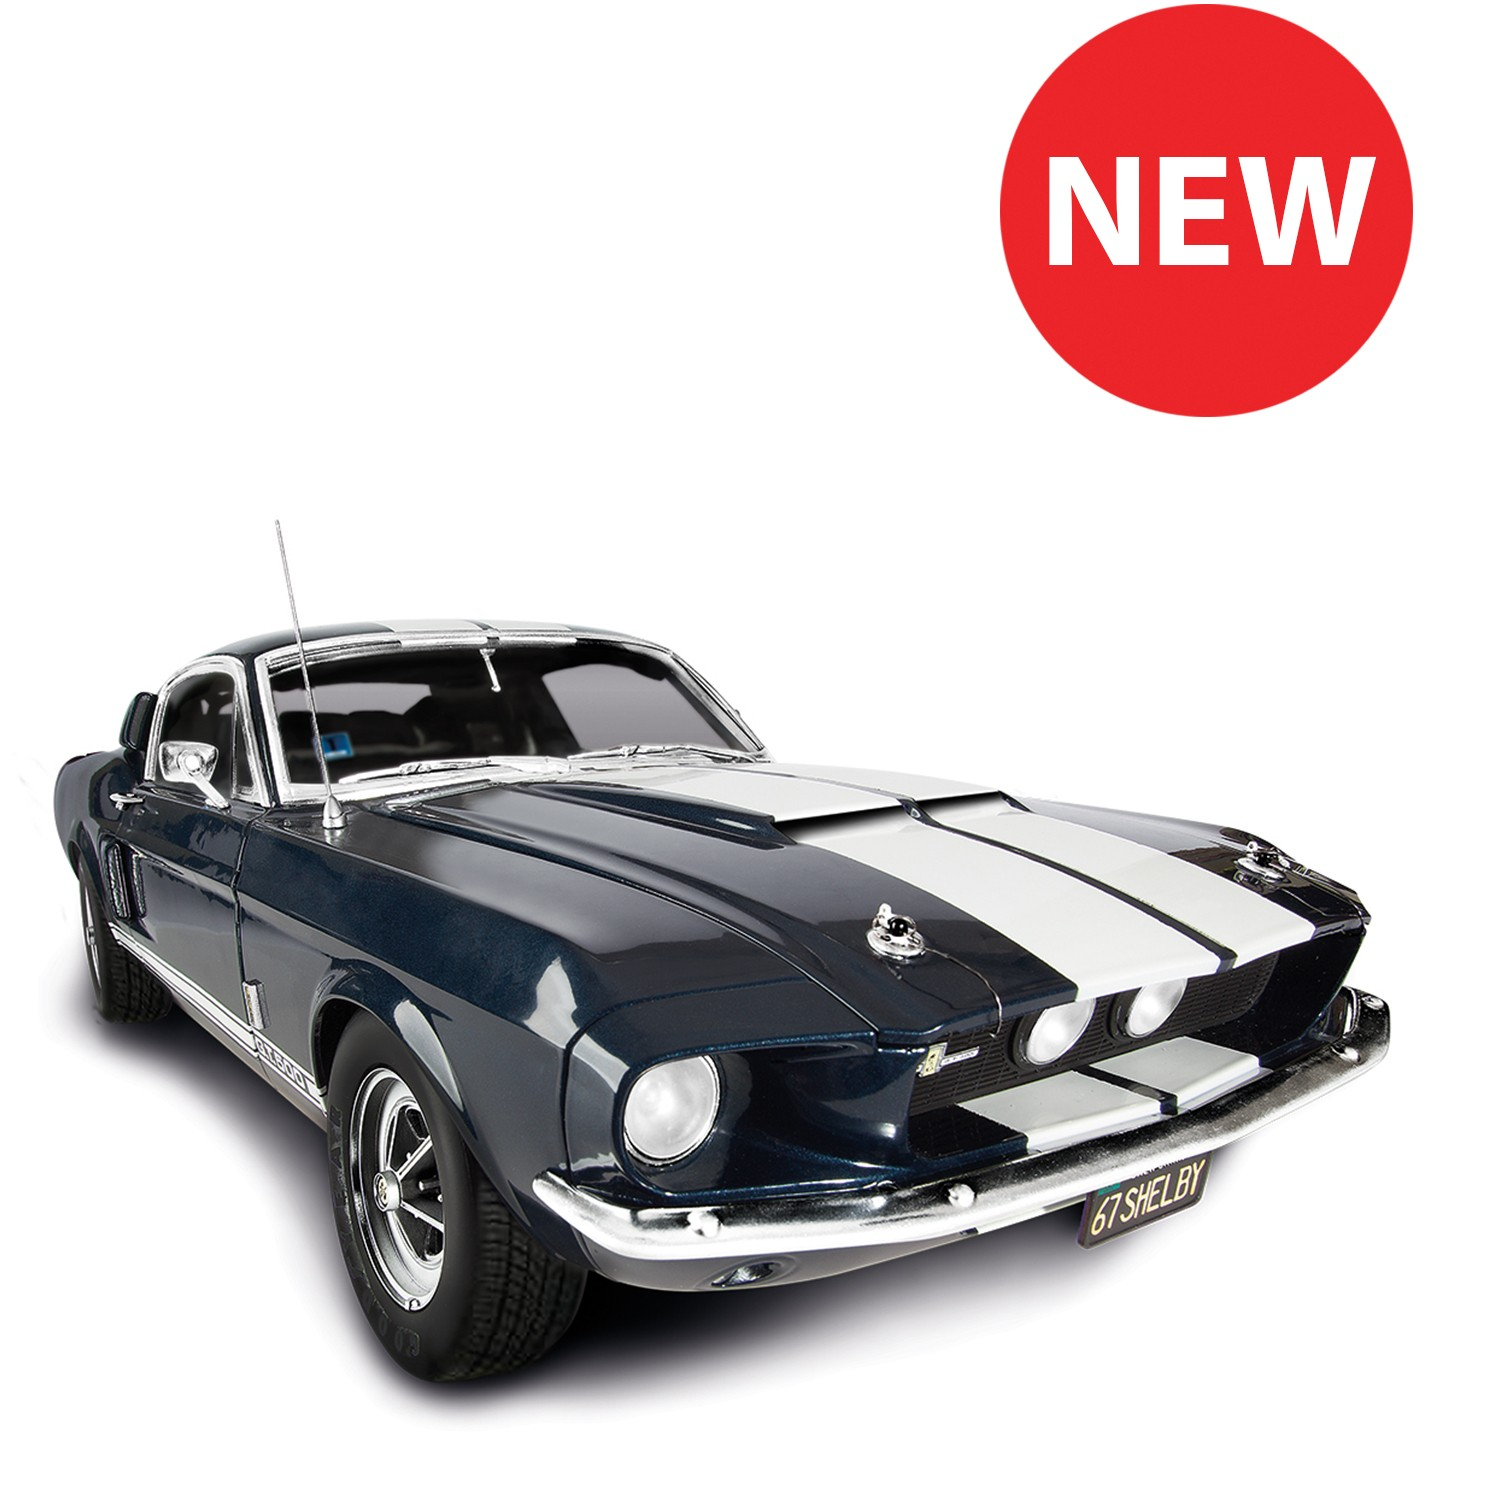 build your own rc car kits with Build Ford Mustang Shelby on Build Senna Mclaren Mp4 4 furthermore Build The Ford Mustang Shelby in addition Enginerun moreover Build Mclaren Mp4 23 together with Wooden Model Boat Designs.